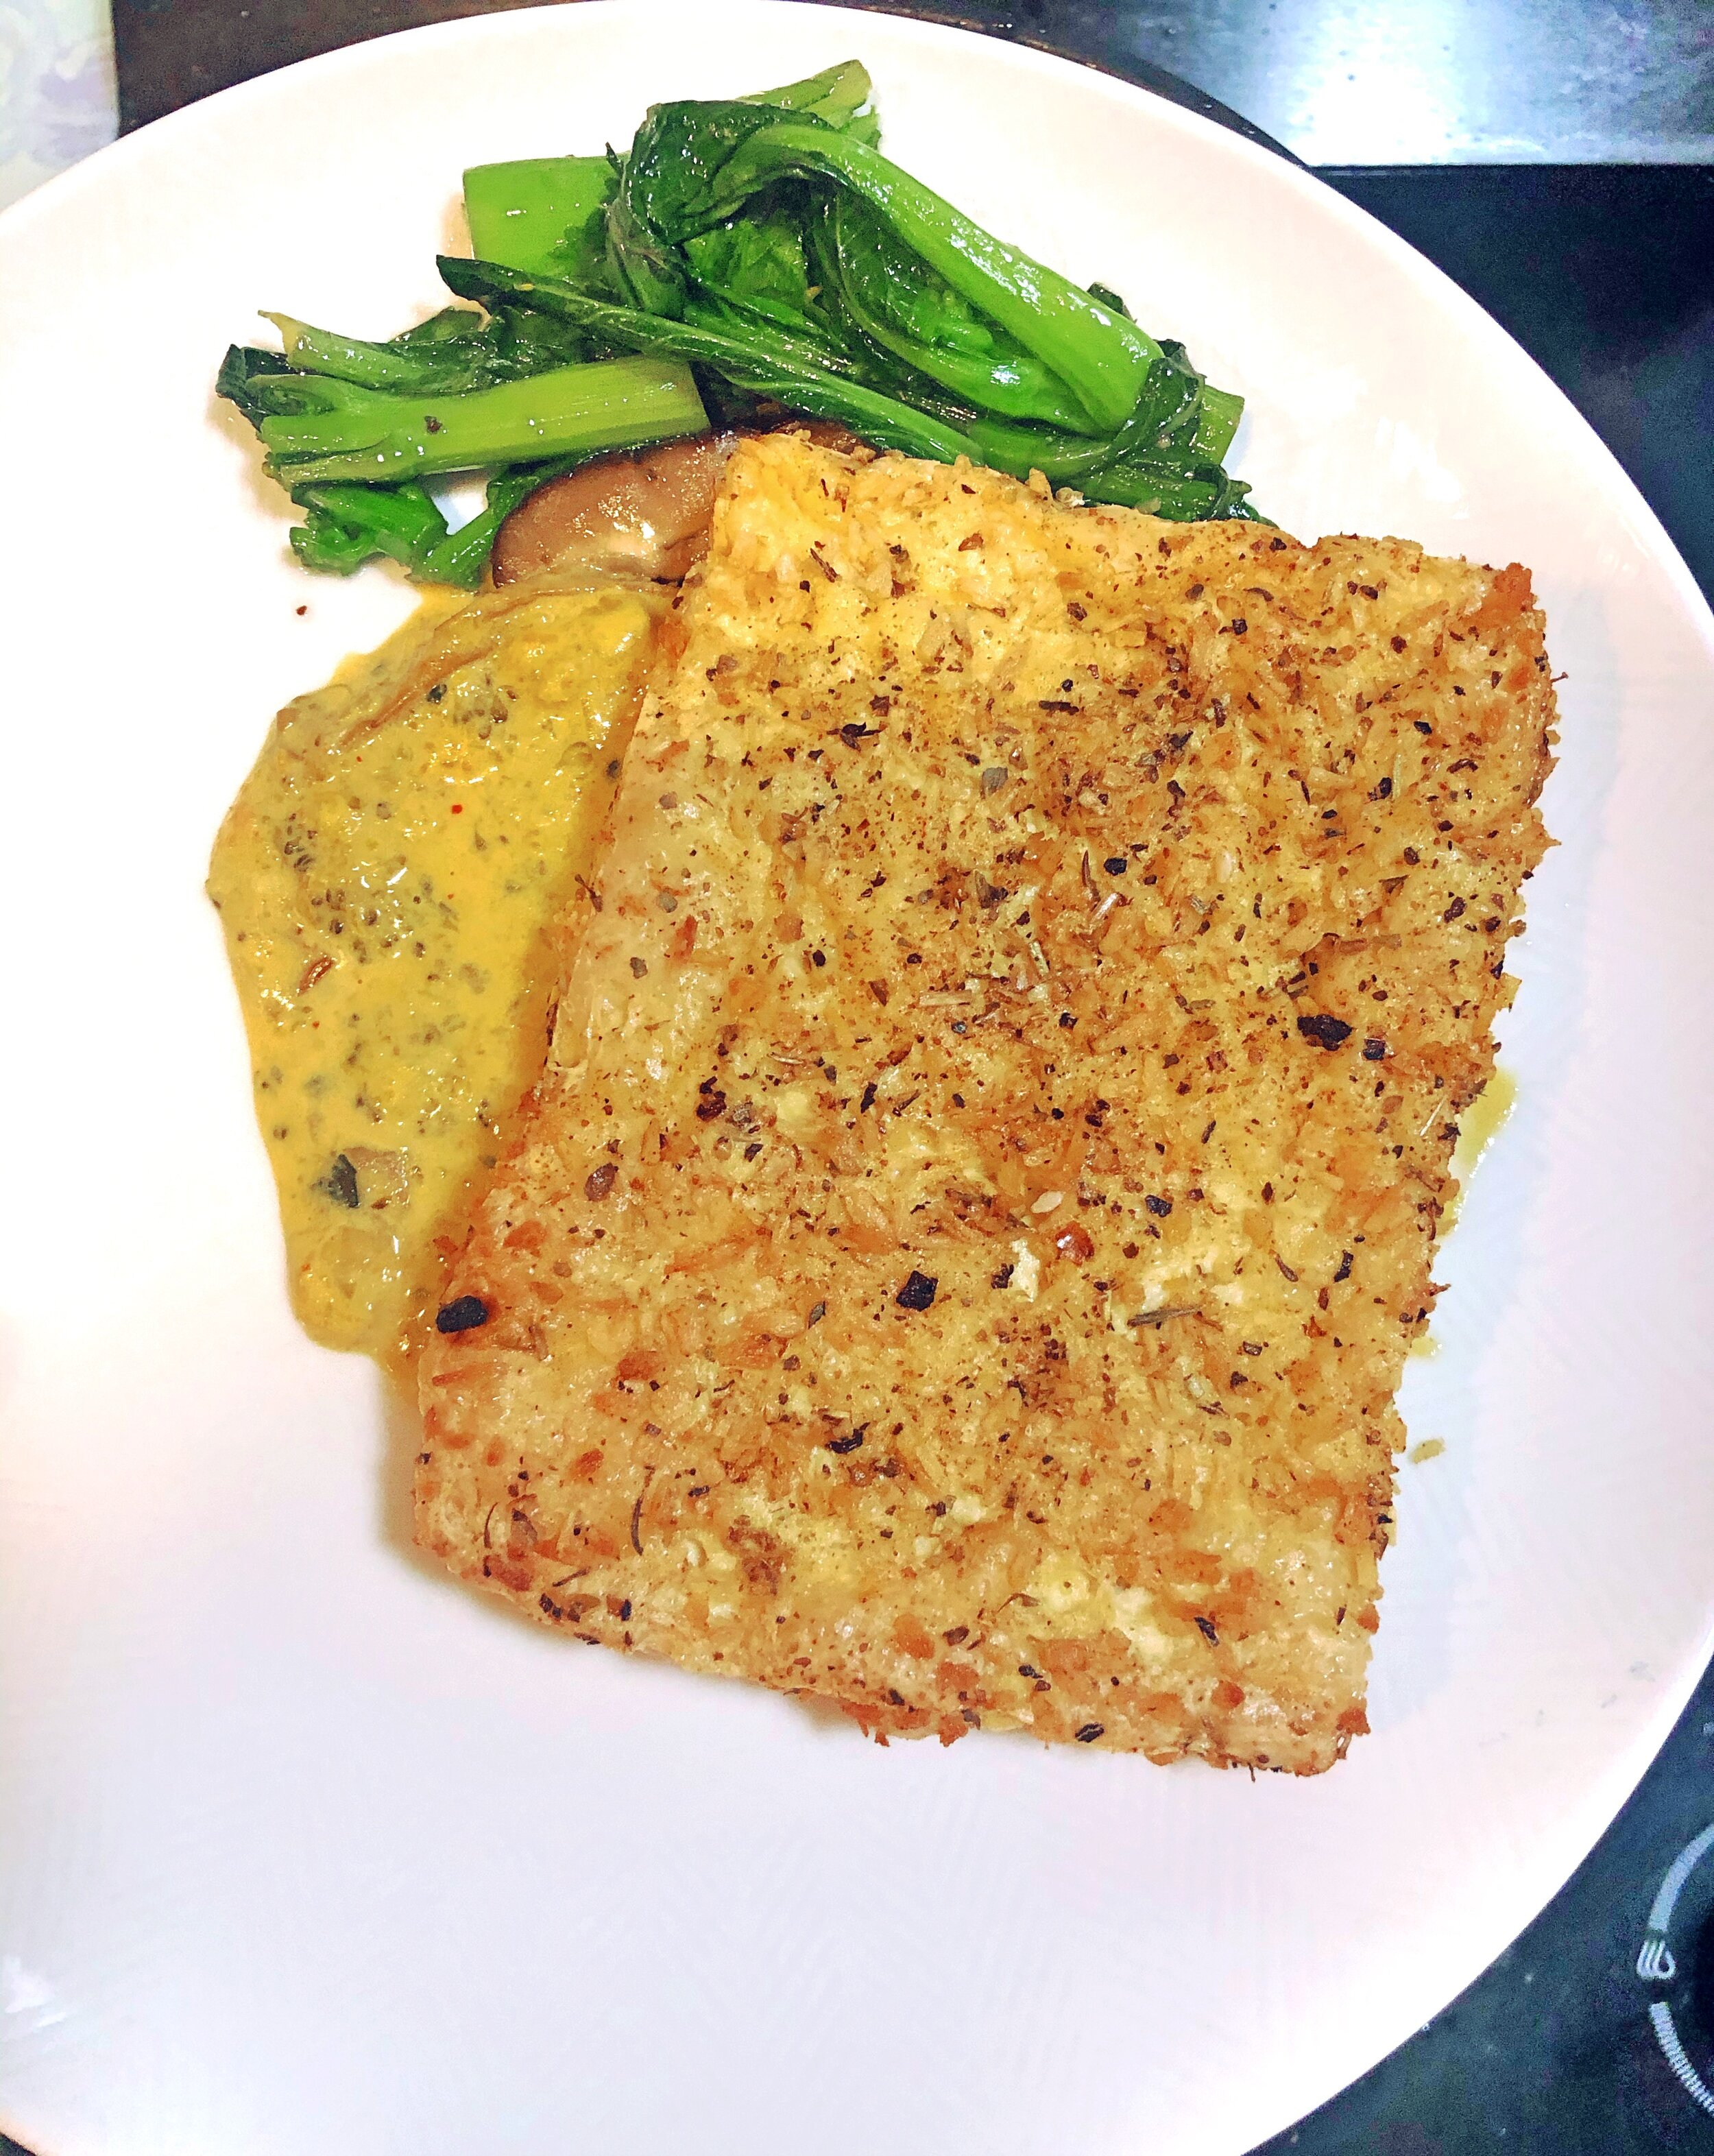 """One of my favourites here!  Ingredients: Organic Firm Tofu.  Coating:  Desiccated Coconut, Italian herbs, S+P, Olive oil,  Method: Pre-heat the oven to medium high, mix the coatings together and then slice the pressed tofu into 1"""" length slices, carefully coat in the mixture then place on to a lined baking tray and drizzle with oil. Bake for 15 minutes.  I served it along side some shiitake mushrooms and choi sum and homemade yellow curry sauce. Simply delicious !!"""